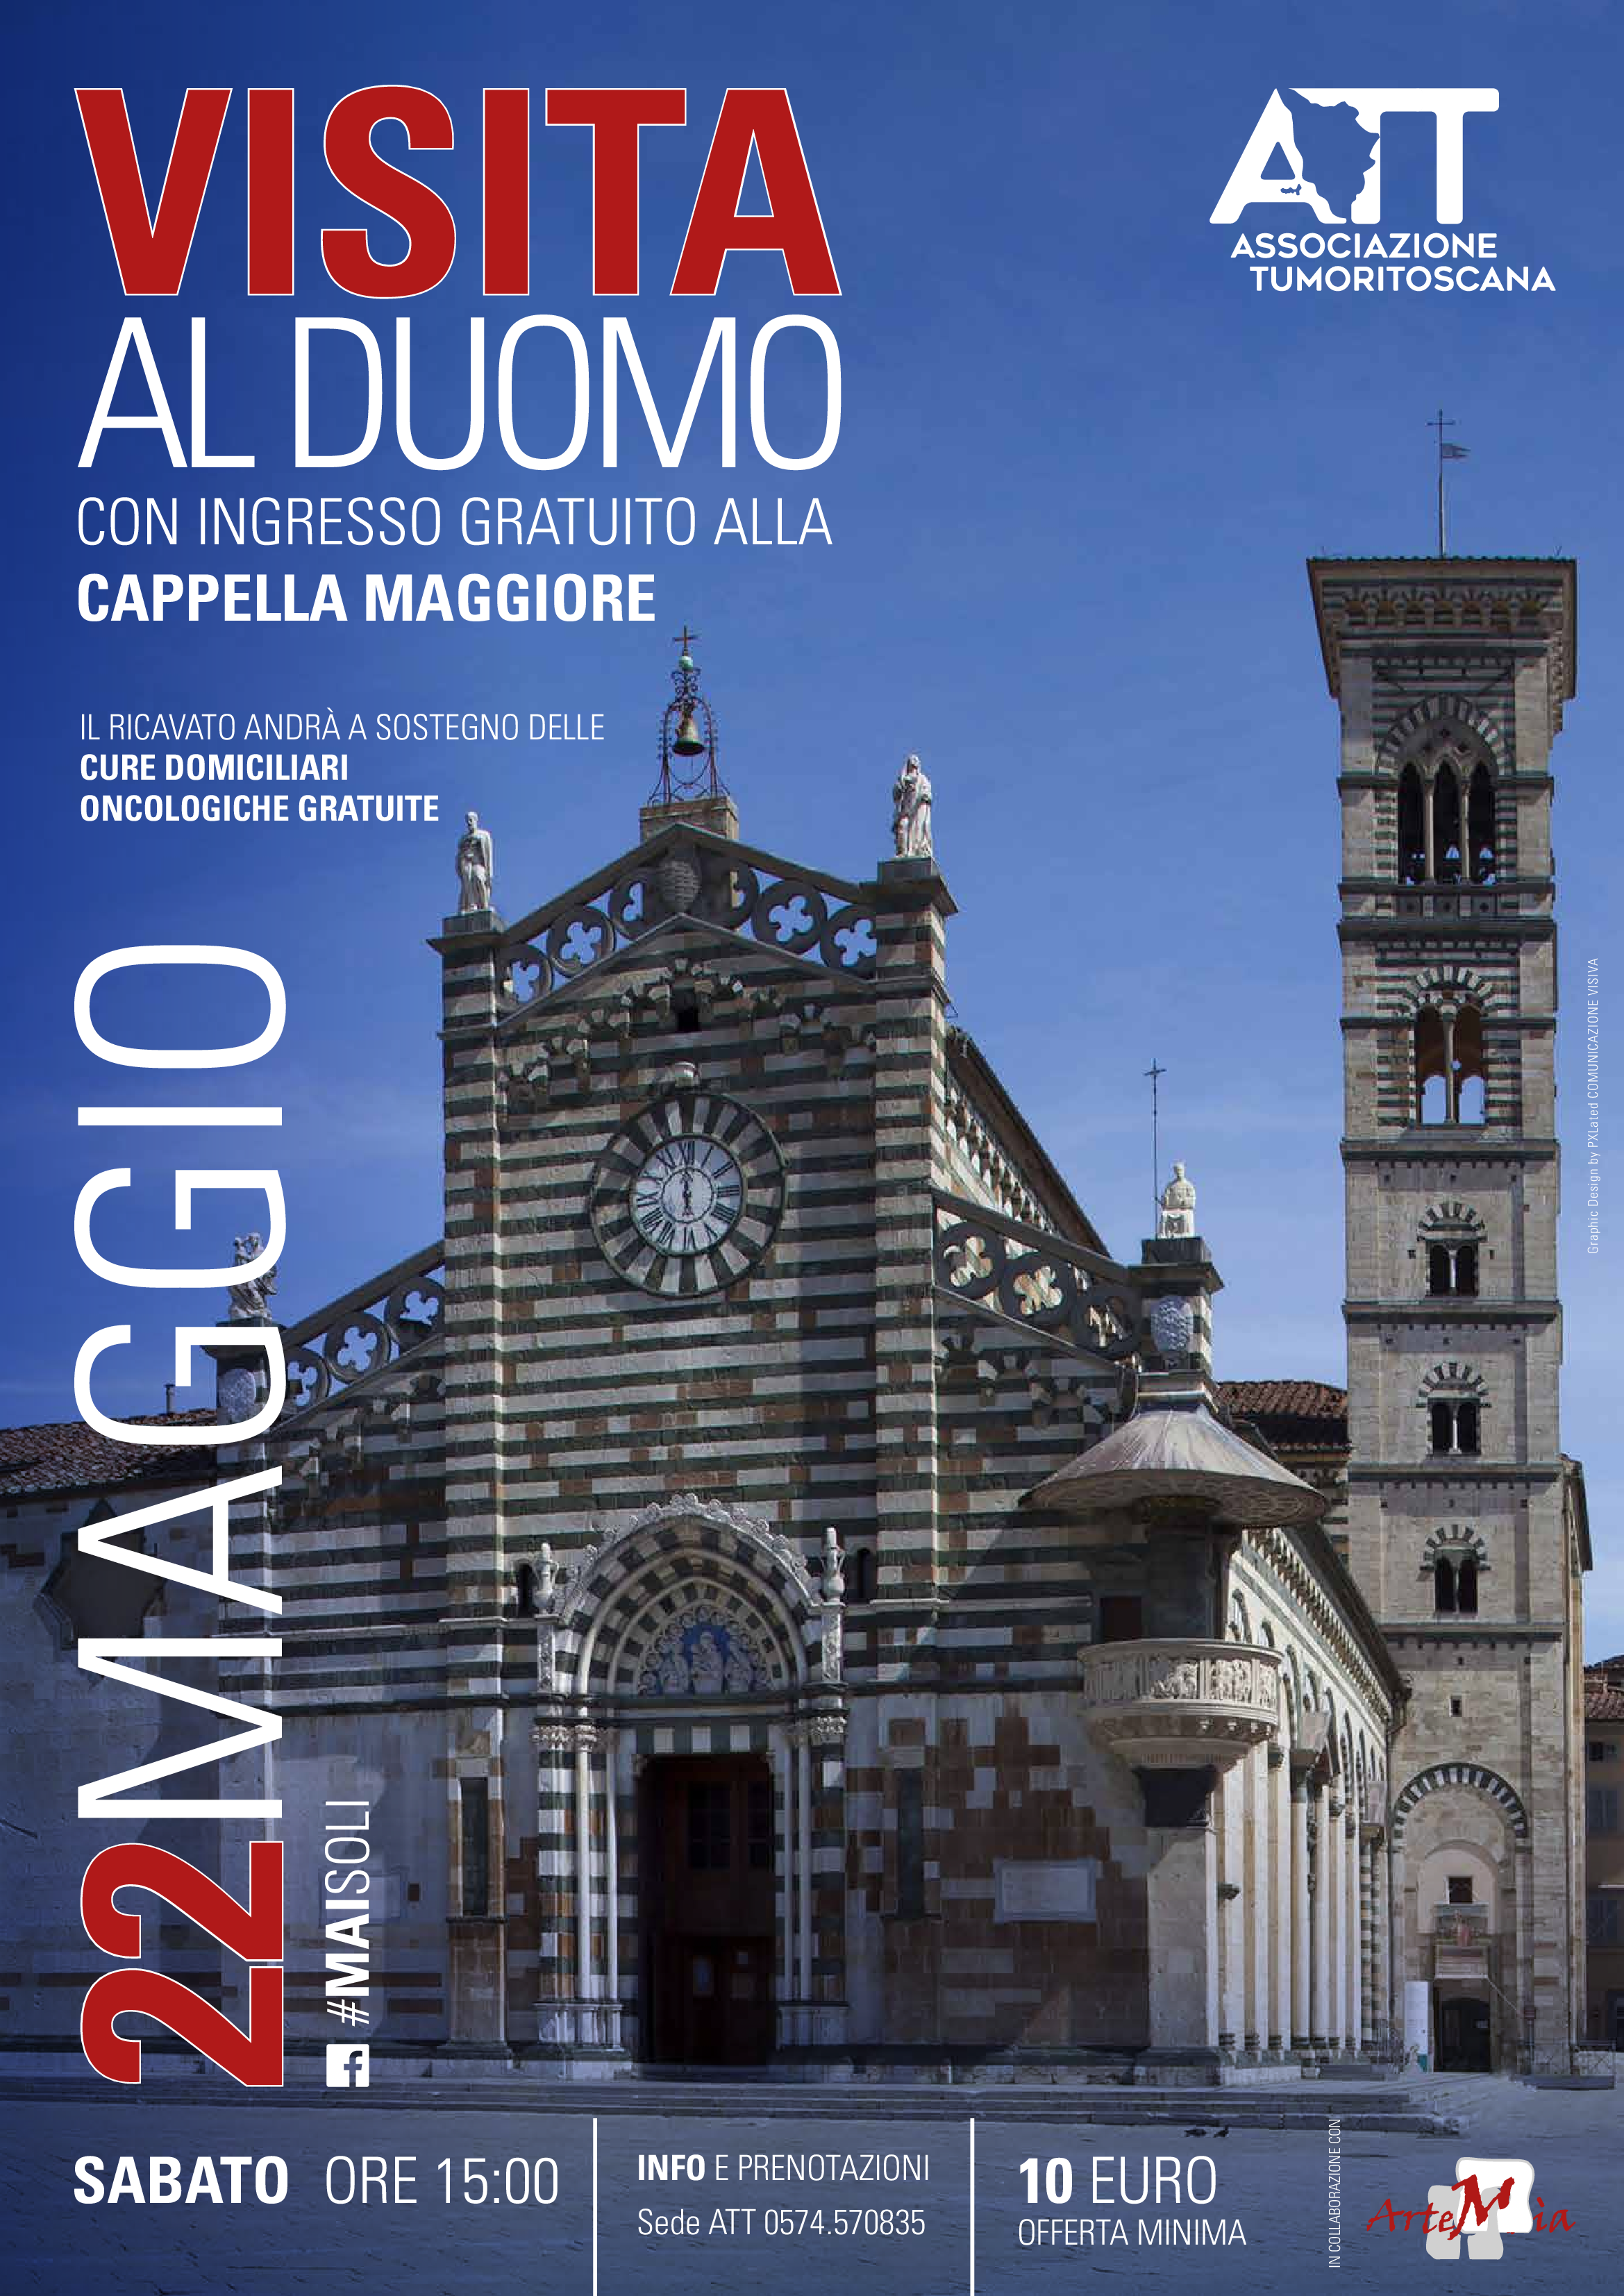 Visita: Visita guidata al Duomo di Prato per ATT